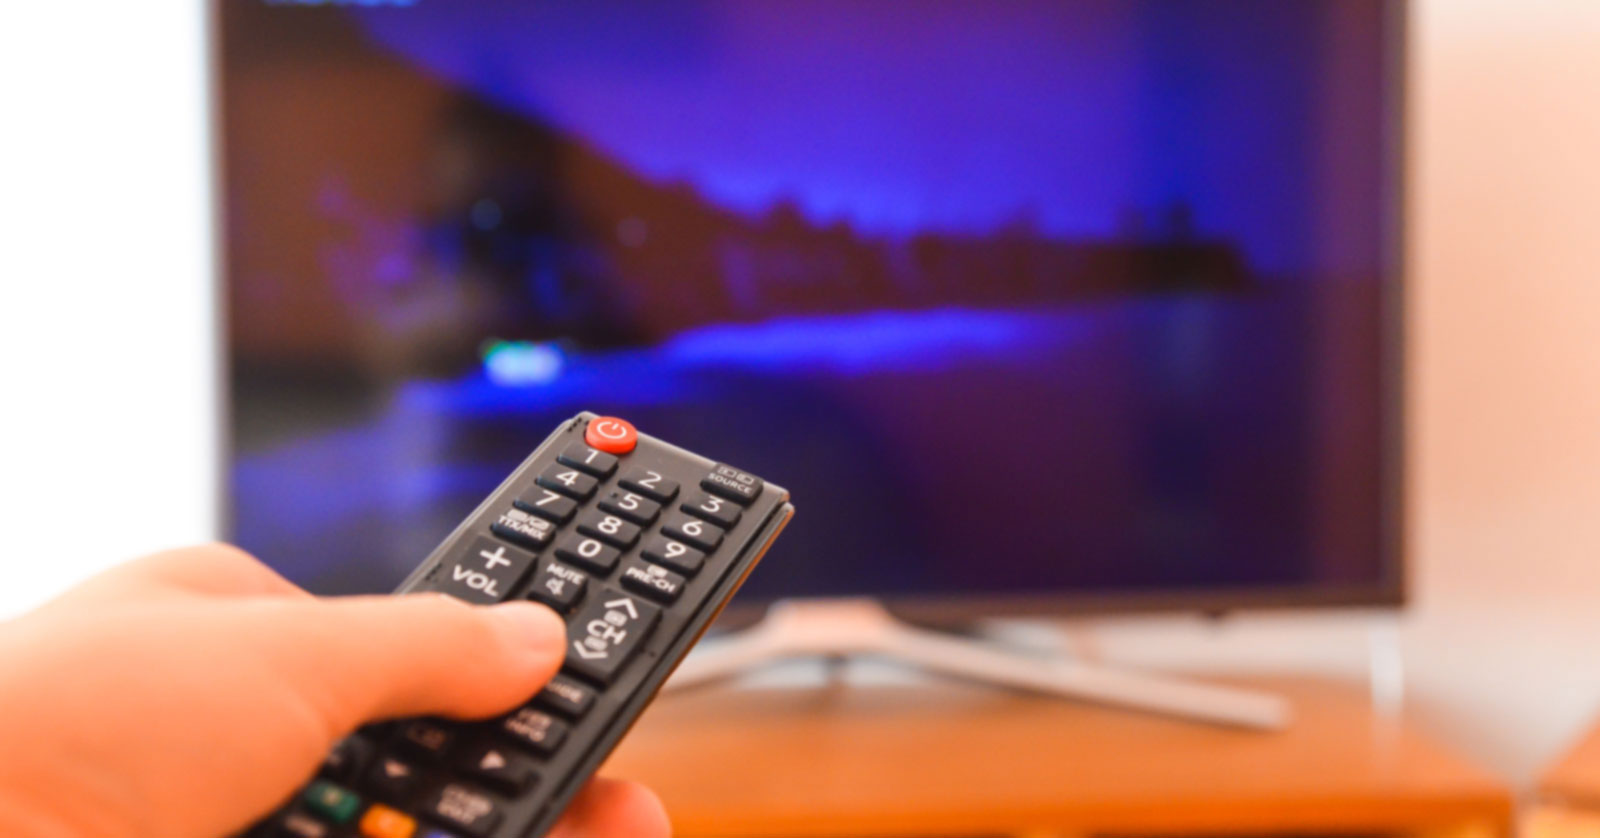 Do Your Eyes Hurt When Watching TV? Here's How to Protect Your Eyes.